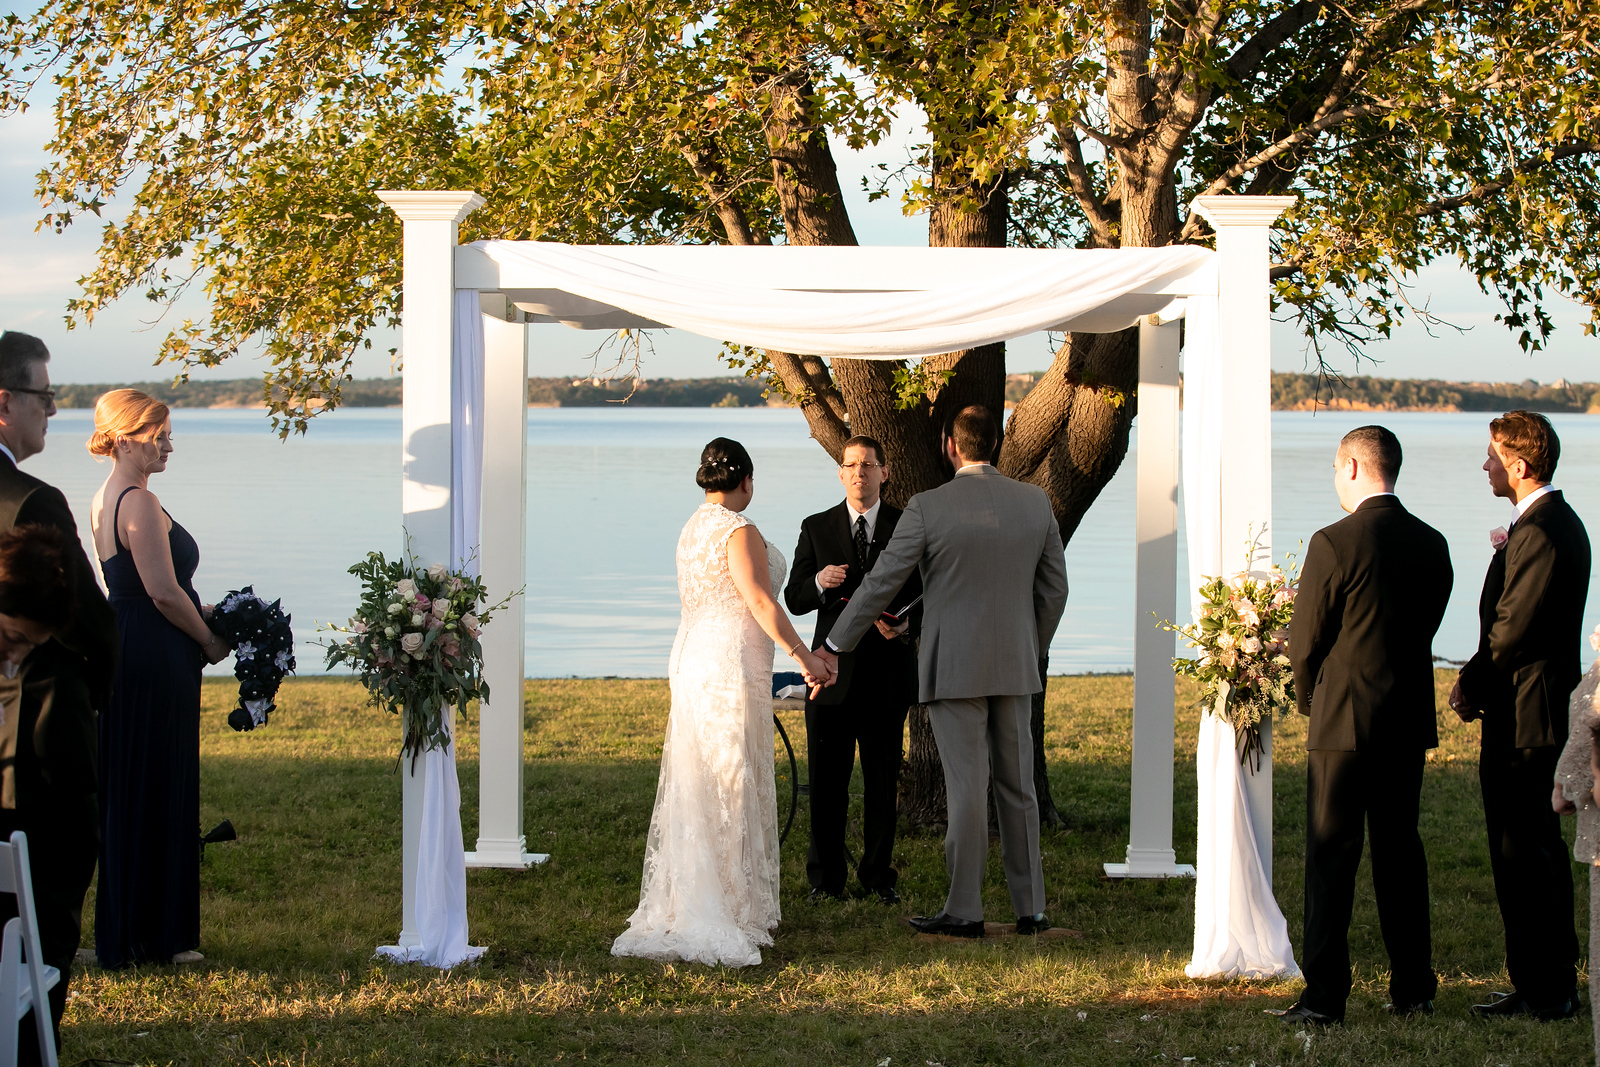 bride and groom standing under a white wedding arch shrouded in white fabric next to a lake for their wedding ceremony